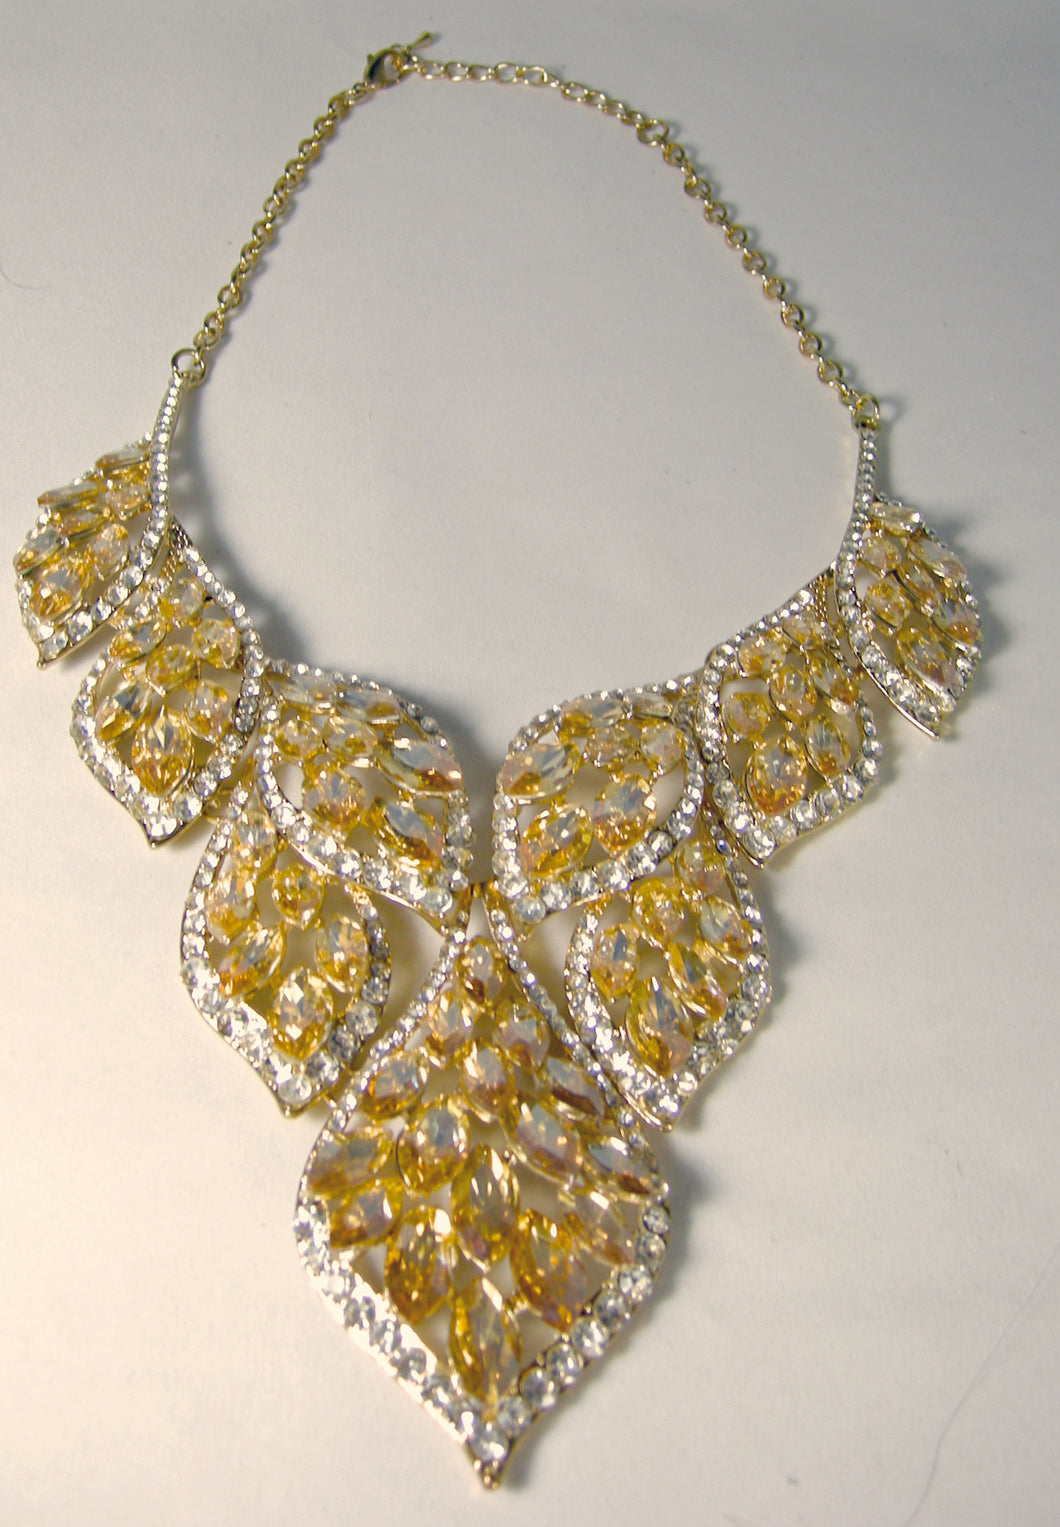 Large Stunning Faux Citrine and Clear Crystal Bib Necklace